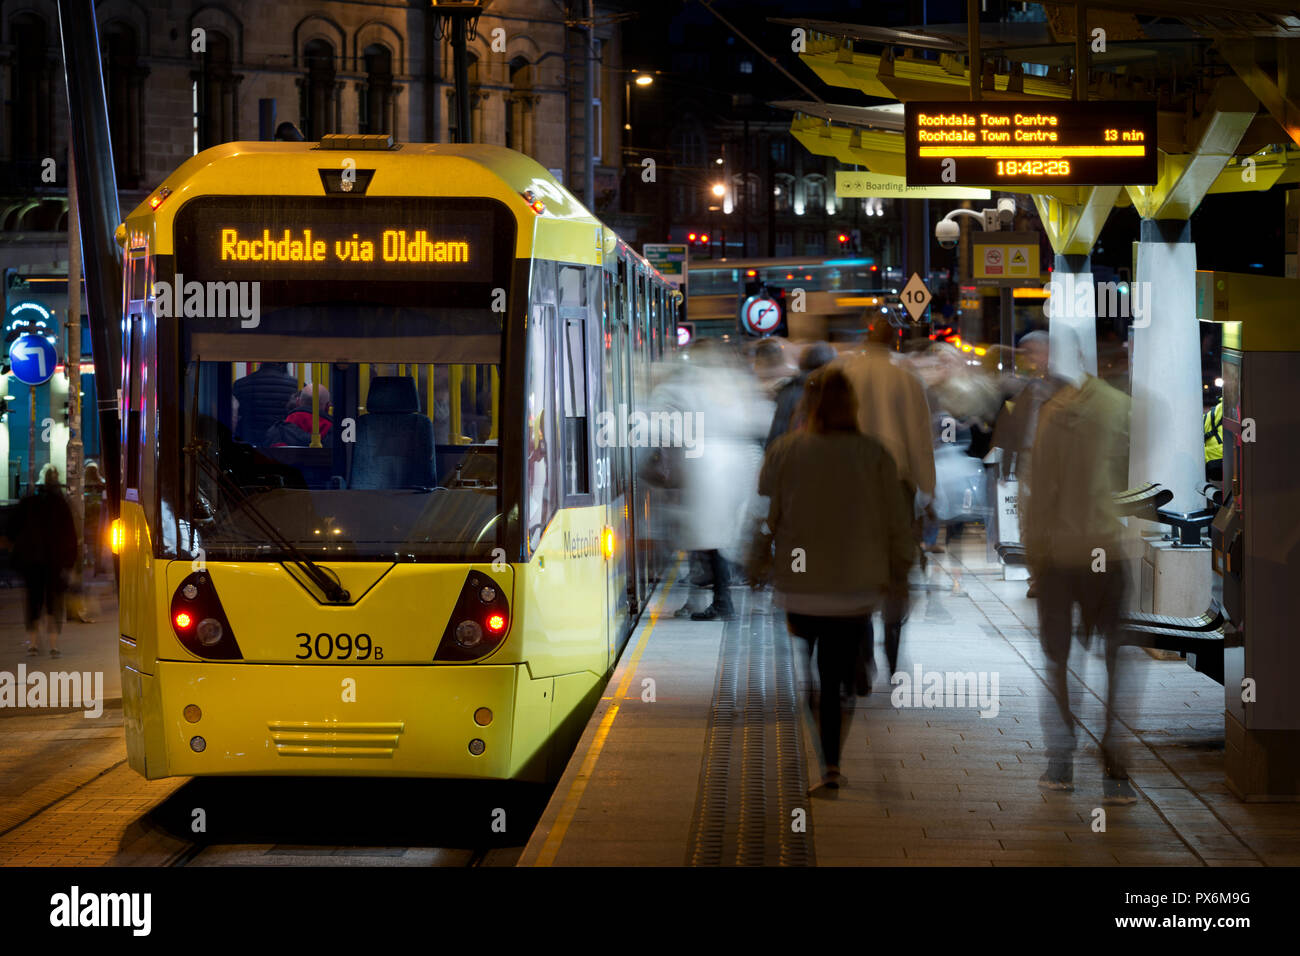 A Metrolink tram bound for Rochdale via Oldham arrives at the Echange Square stop in Manchester City Centre, UK. - Stock Image